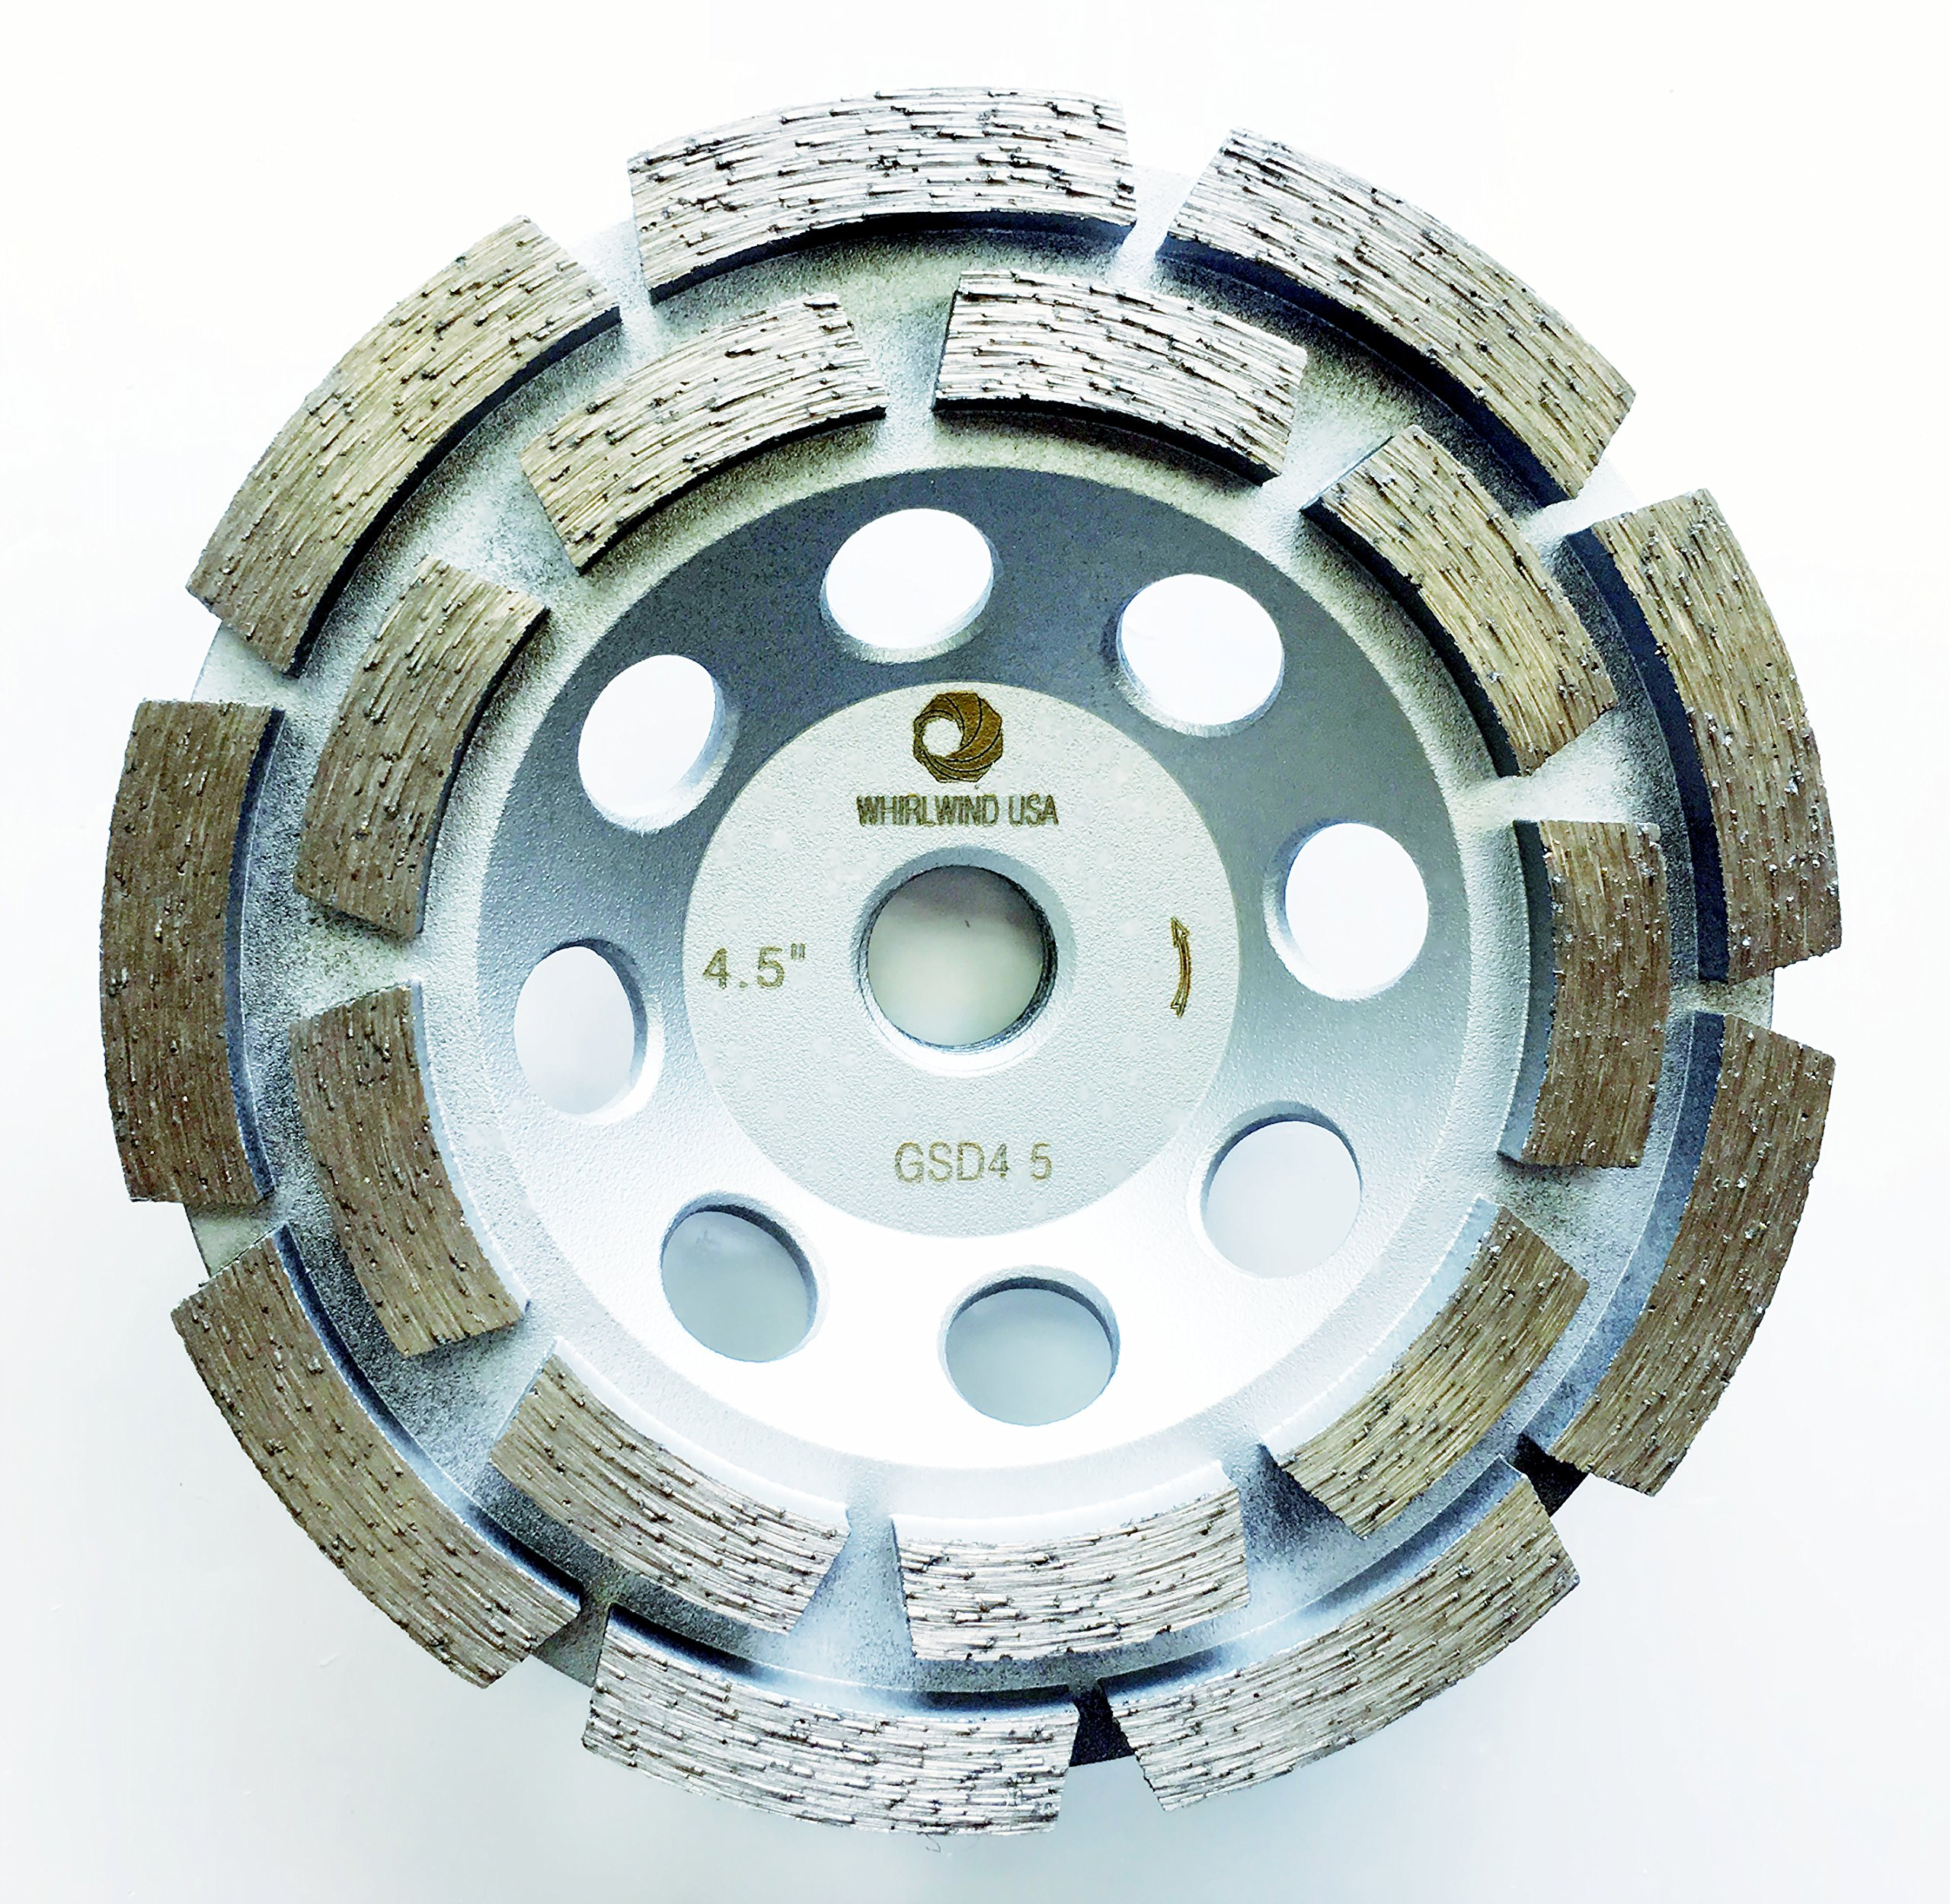 Whirlwind USA GSD 4.5 in. Diamond Grinding Cup Wheel Double Row Standard Higher Diamond Concentration with 5/8-Inch 11mm Thread (4.5''-S)